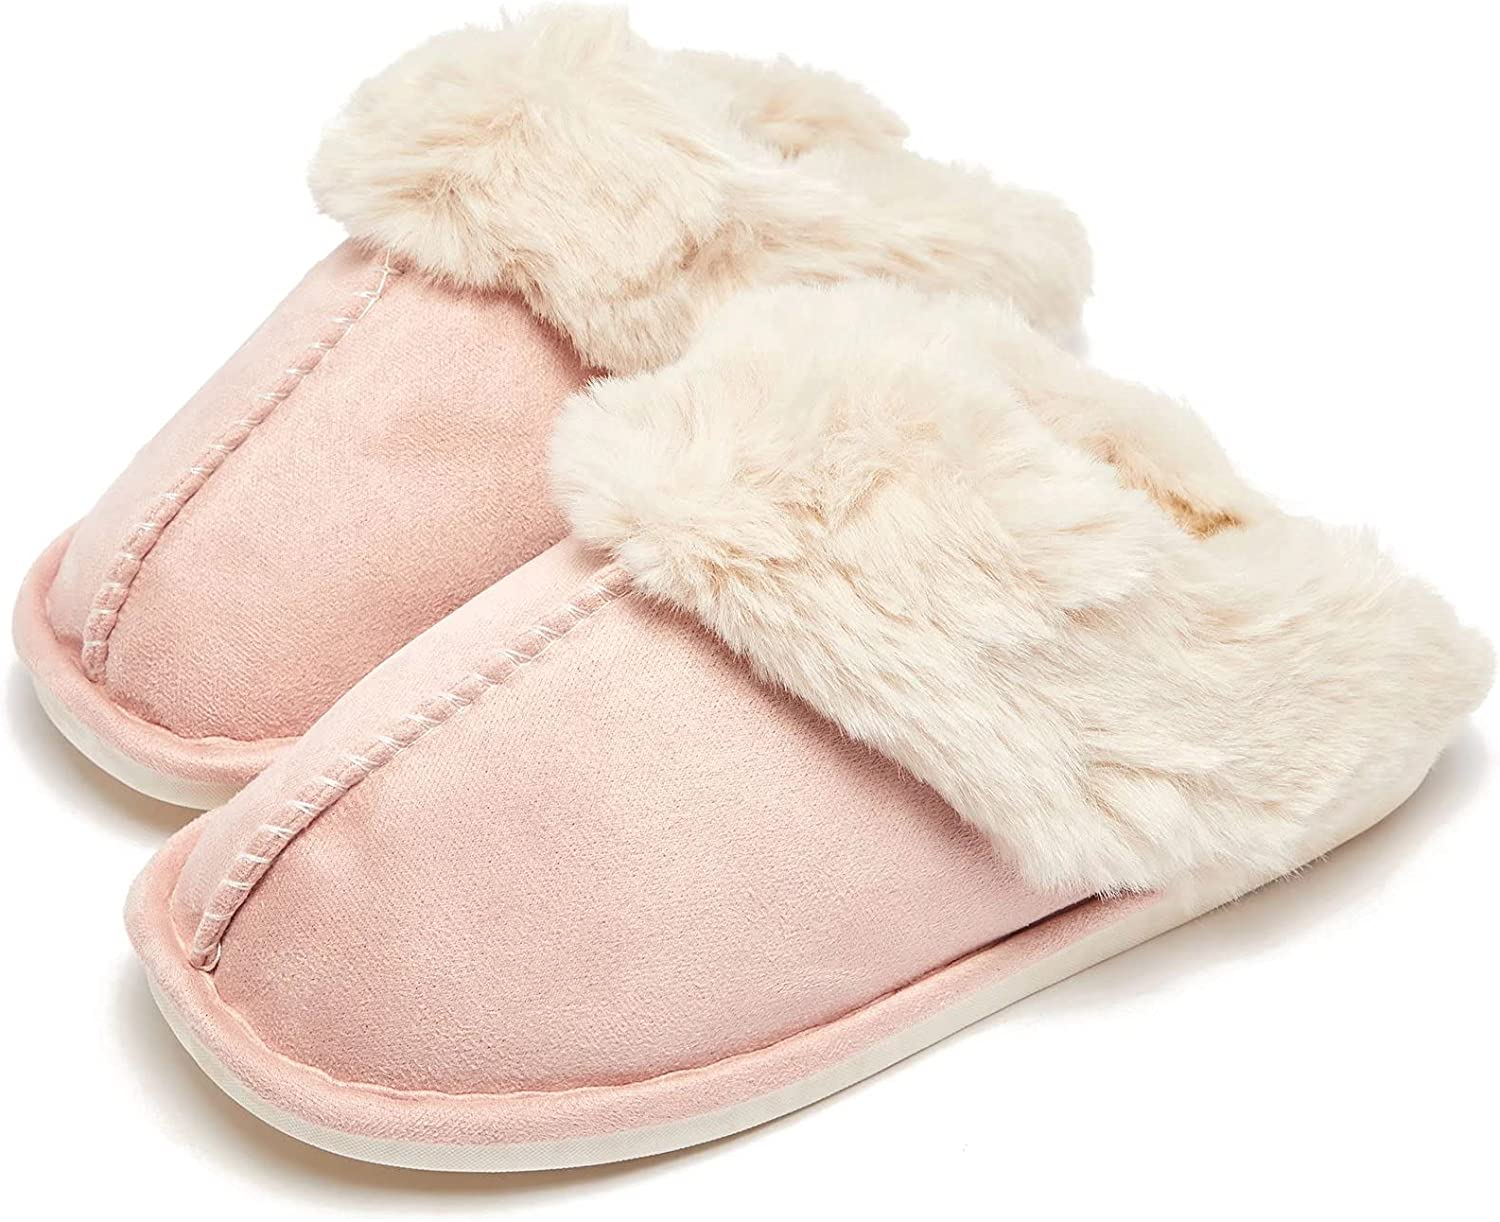 HOBIBEAR Slip on Max 41% OFF Fuzzy House Slippers Complete Free Shipping Women with for Men Memory